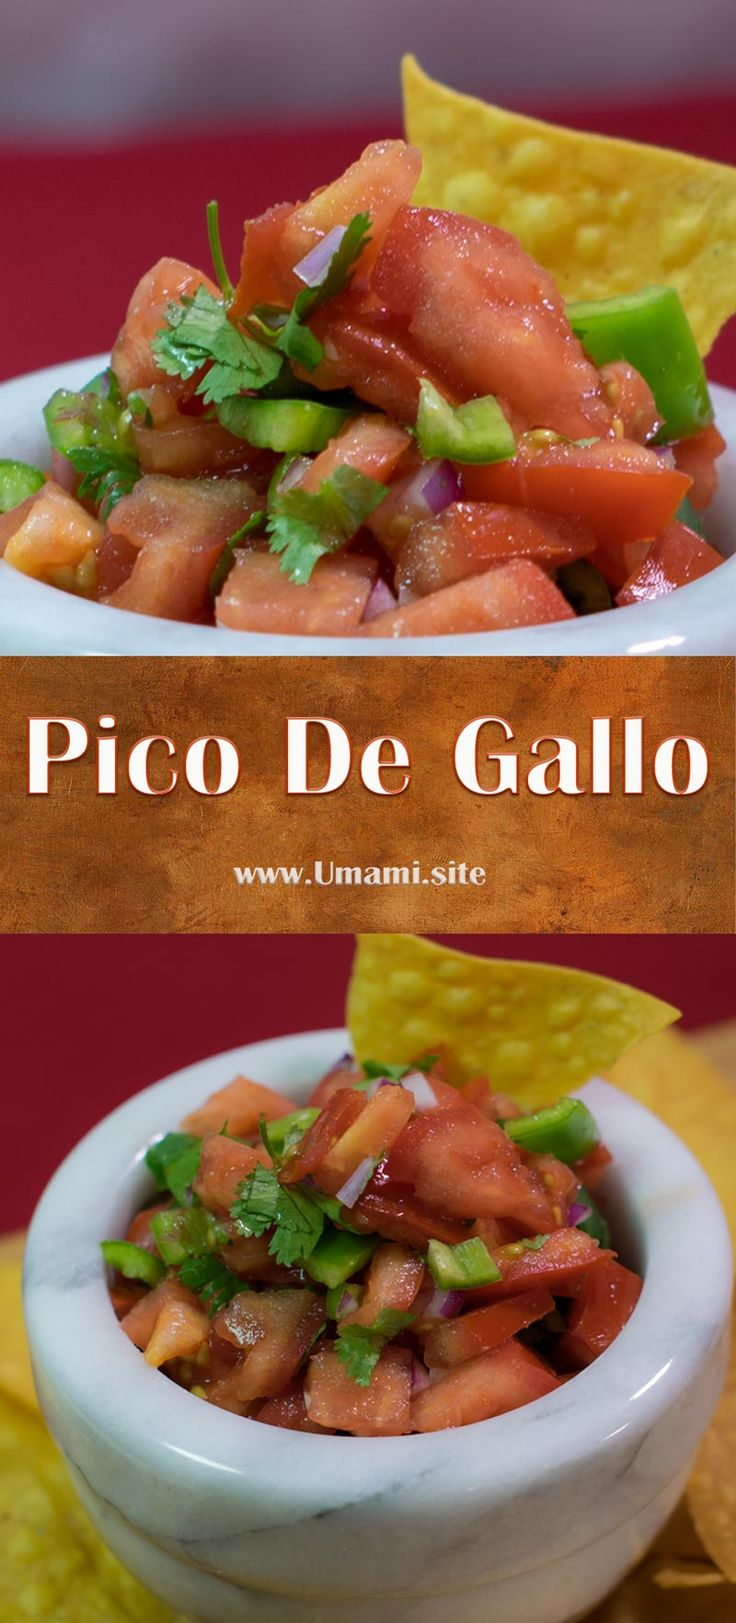 Pico de gallo is a great addition to any Mexican or southwestern dish. The fresh tomatoes, cilantro, and pepper are an easy way to brighten up tacos, burritos, and quesadillas.